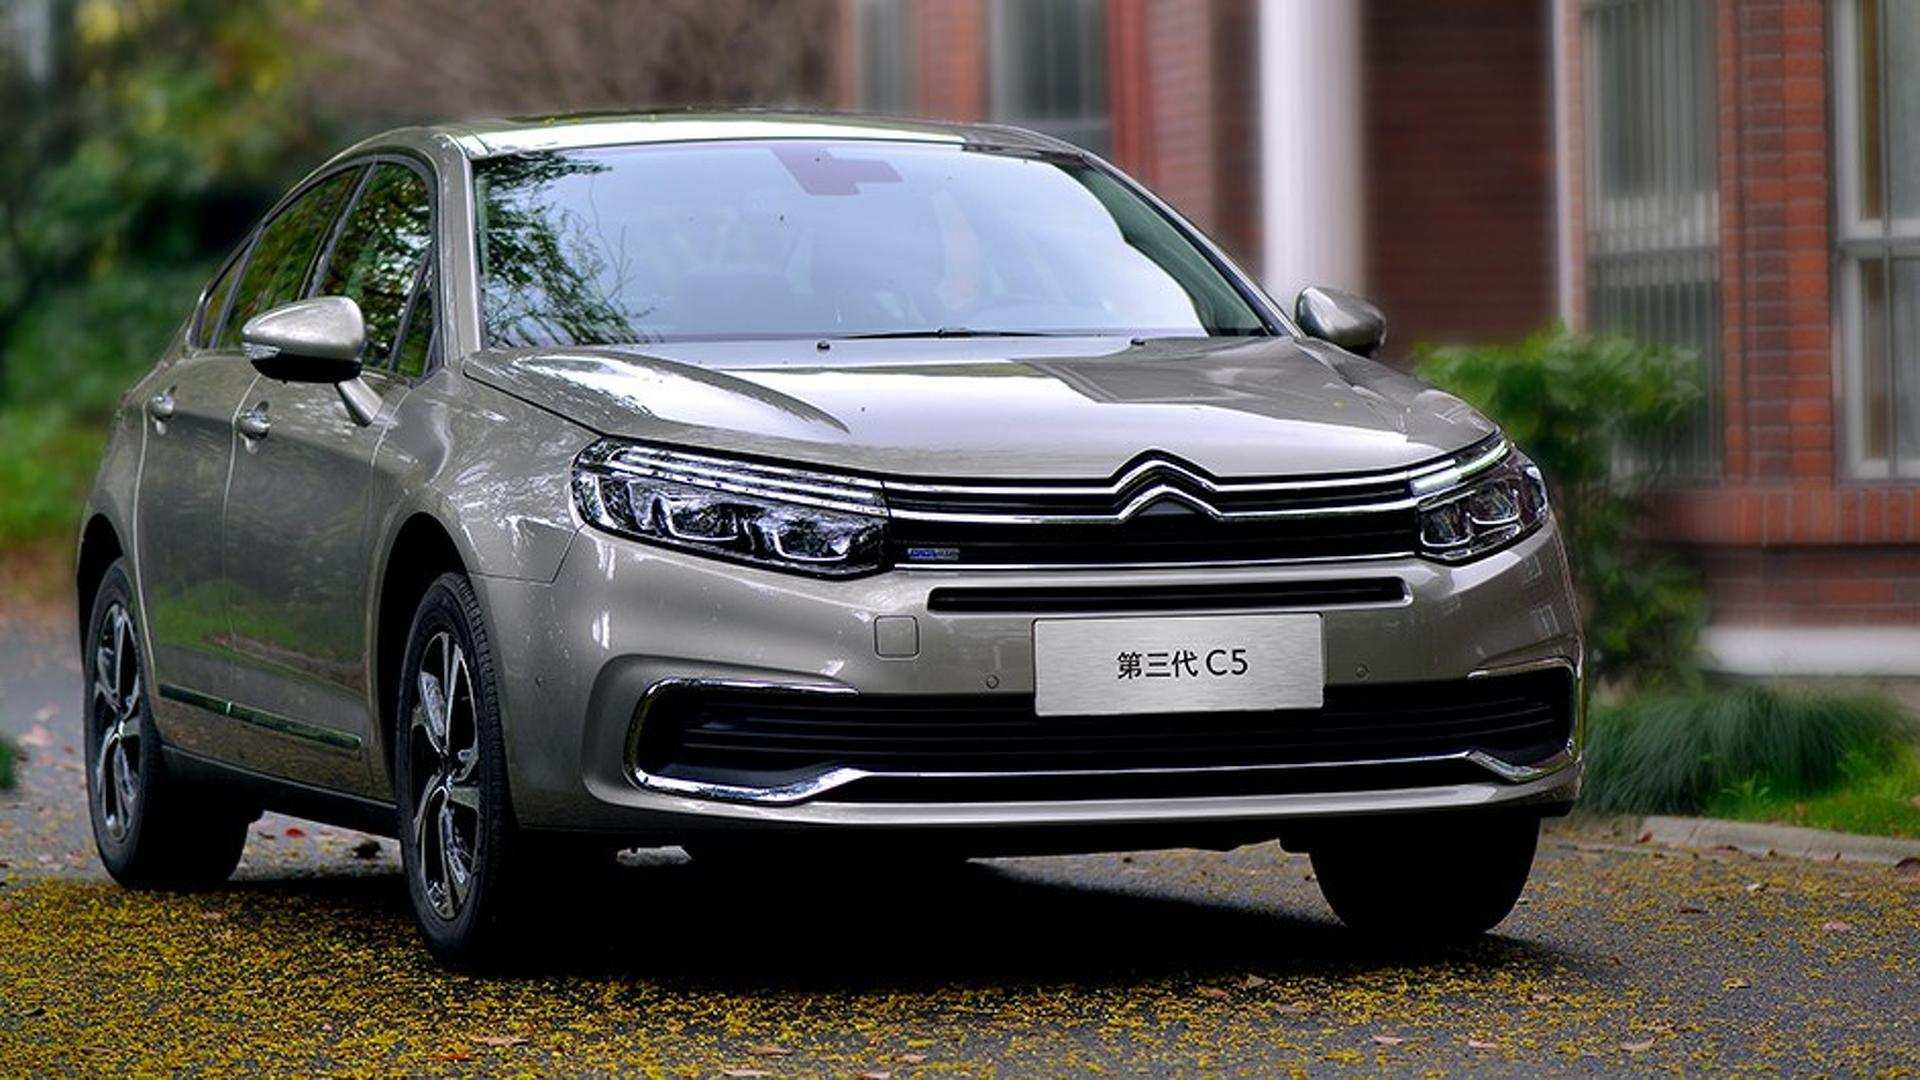 68 A Citroen Ds5 2020 Price And Review